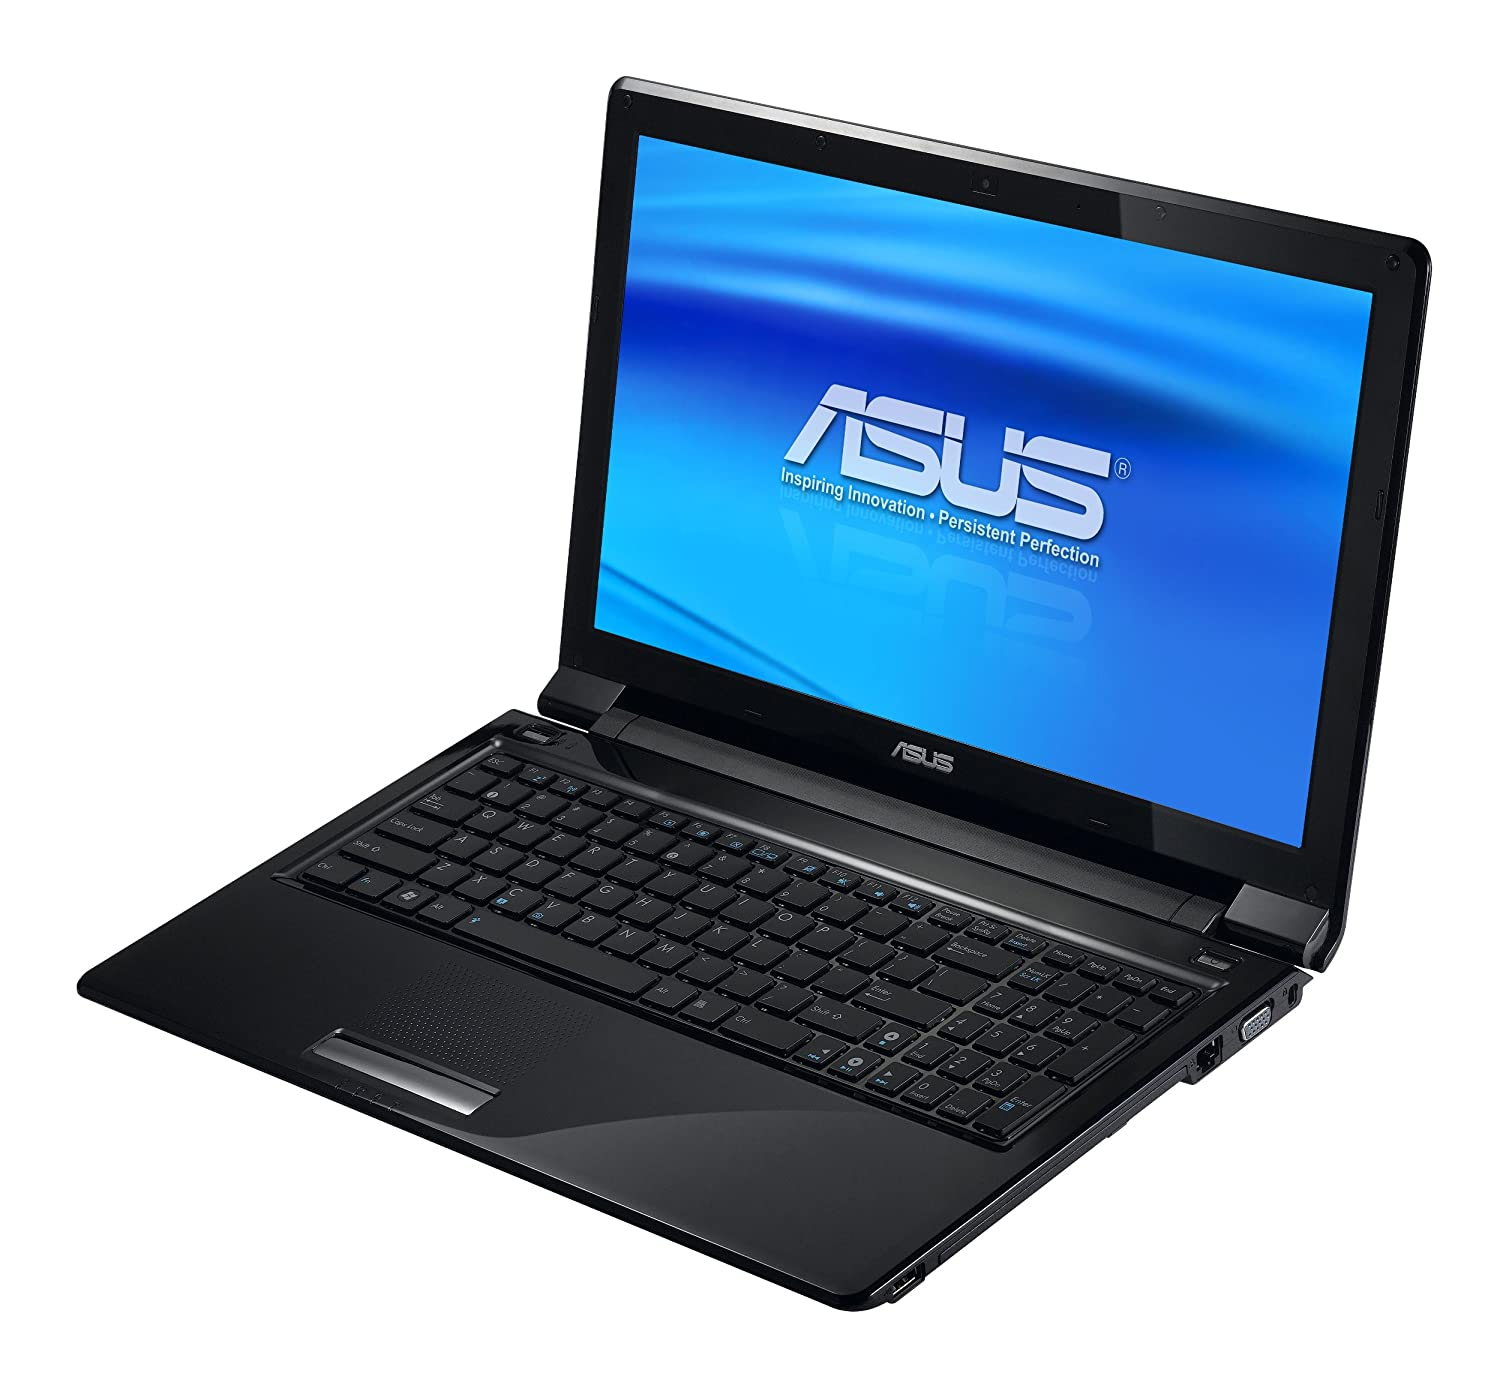 DRIVERS FOR ASUS UL50AG